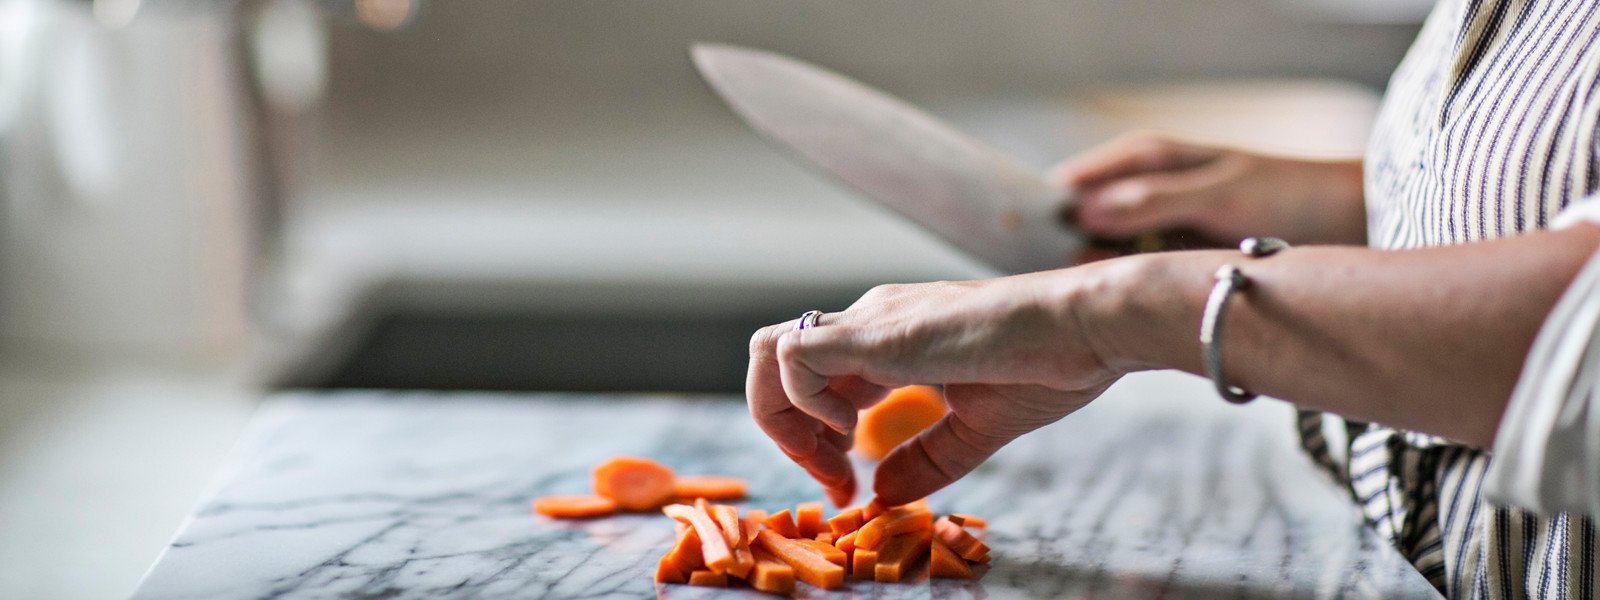 The Kitchen's Edge: Zhen & Quality Kitchen Knives & Chef Knife Bags